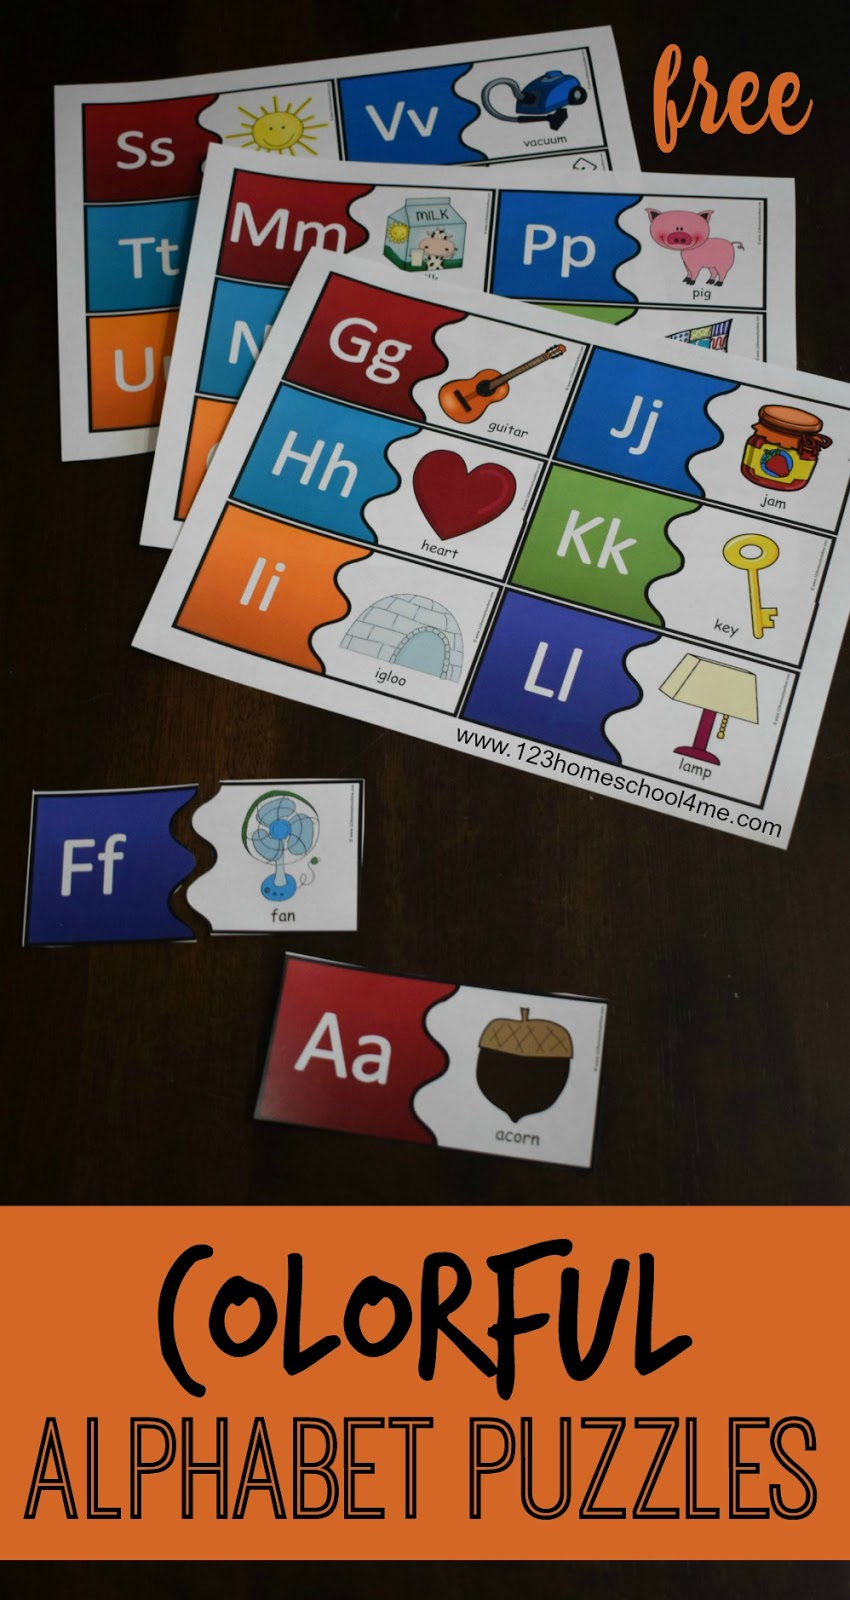 Kindergarten Worksheets and Games: FREE Colorful Alphabet Puzzles